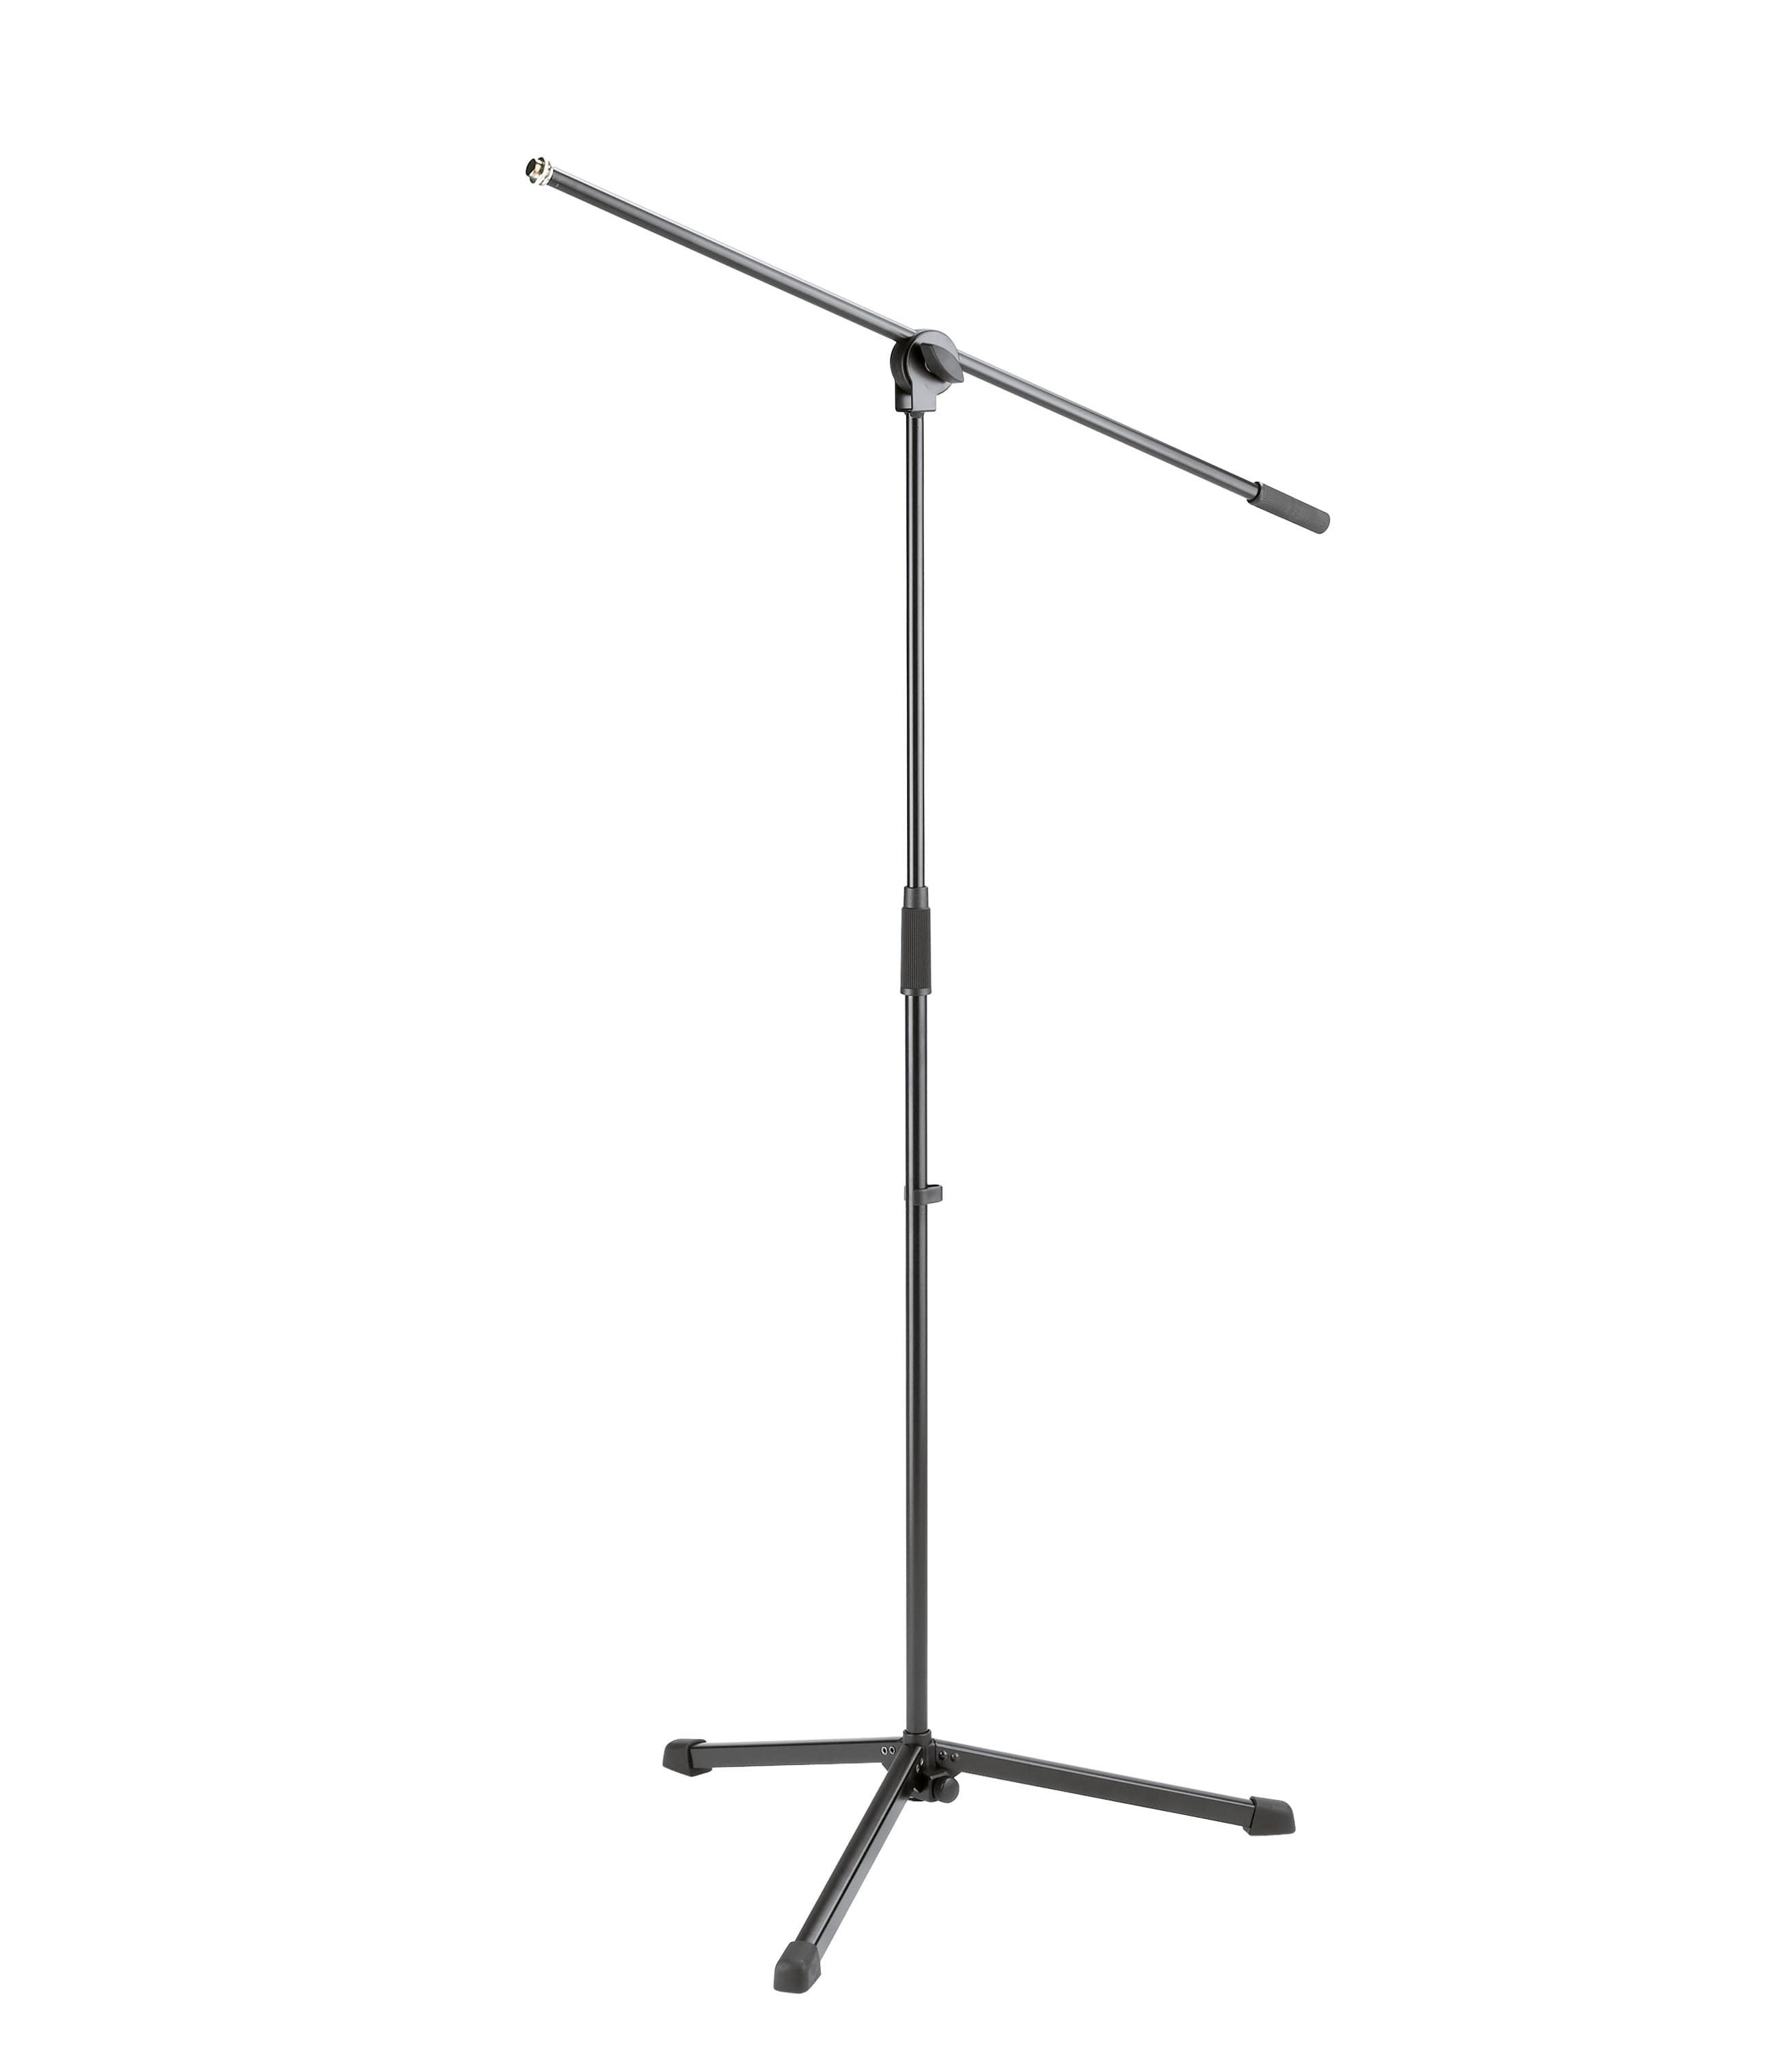 Buy K&M - 25400 500 55 low priced microphone stand w boom